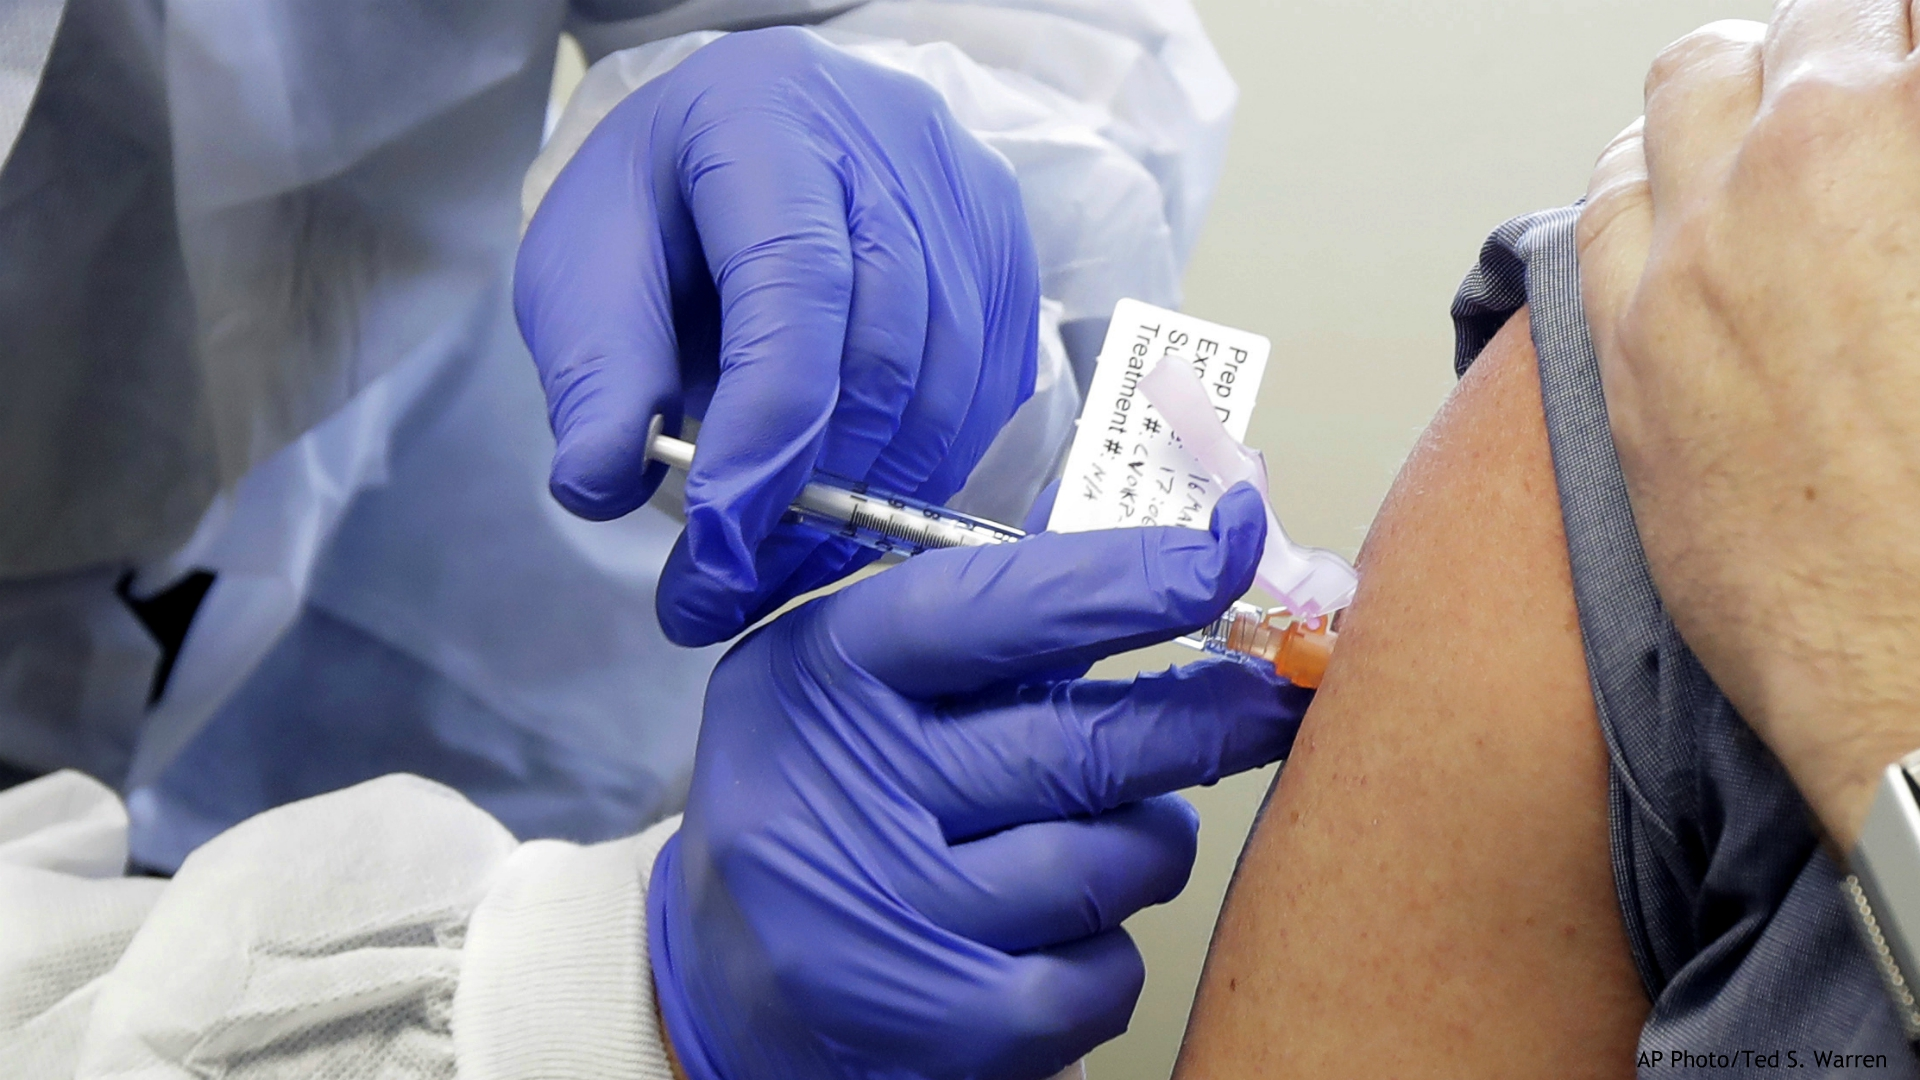 In this March 16, 2020, file photo, Neal Browning receives a shot in the first-stage safety study clinical trial of a potential vaccine for COVID-19, the disease caused by the new coronavirus, at the Kaiser Permanente Washington Health Research Institute in Seattle. (AP Photo/Ted S. Warren, File)